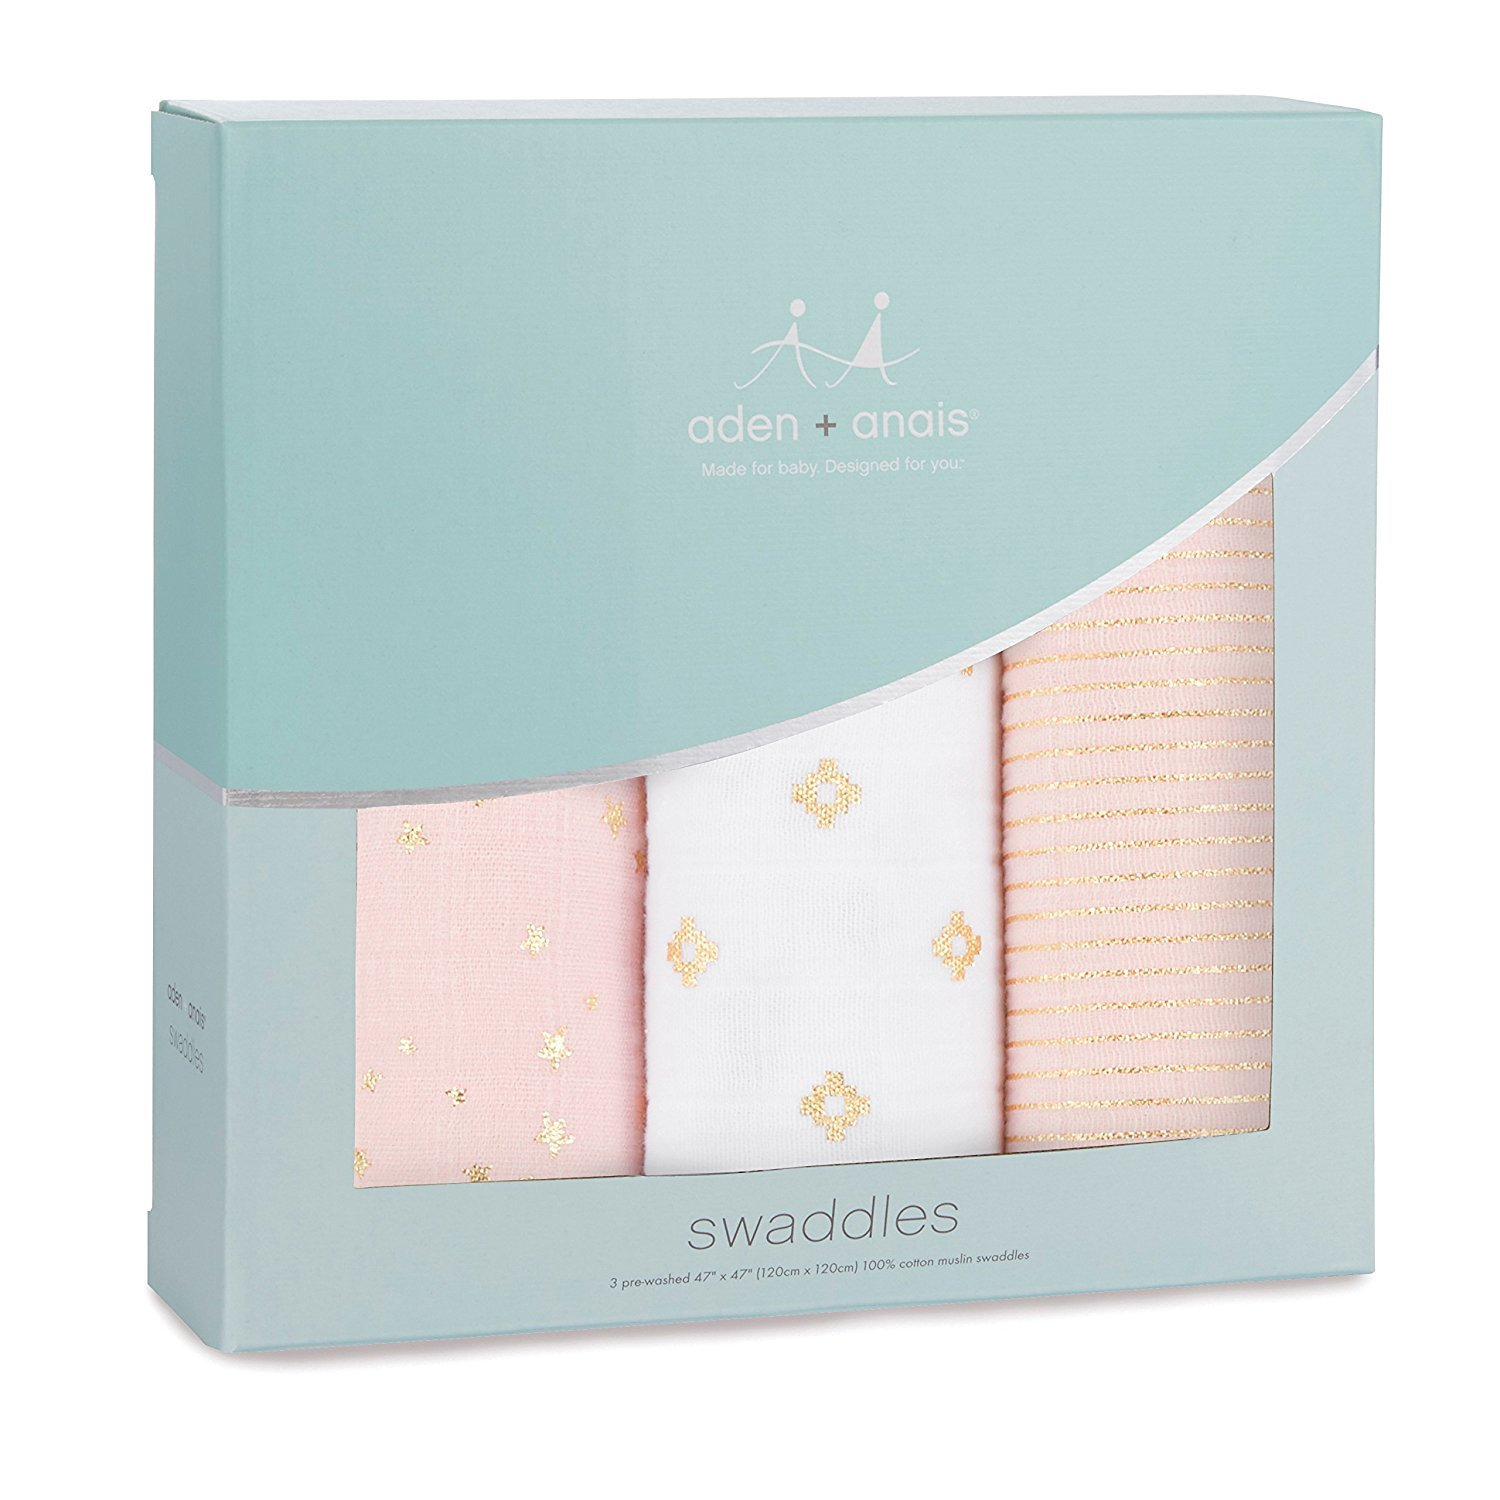 Aden + Anais: Metallic Dream Swaddle - Primrose (3 Pack Swaddling Wraps) image